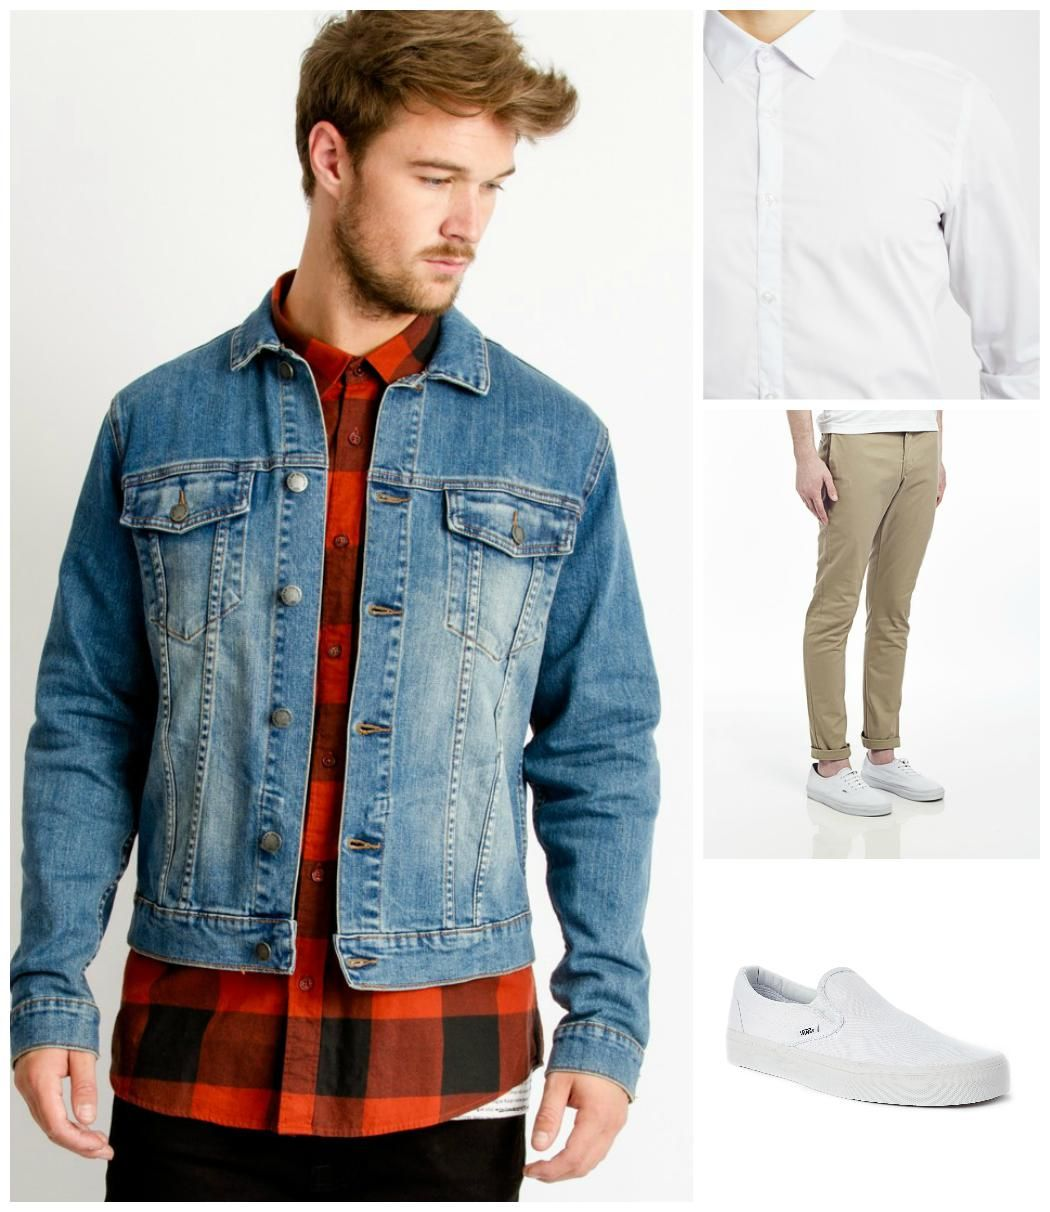 4 Seasonal Outfits to Wear With a Denim Jacket | The Idle Man